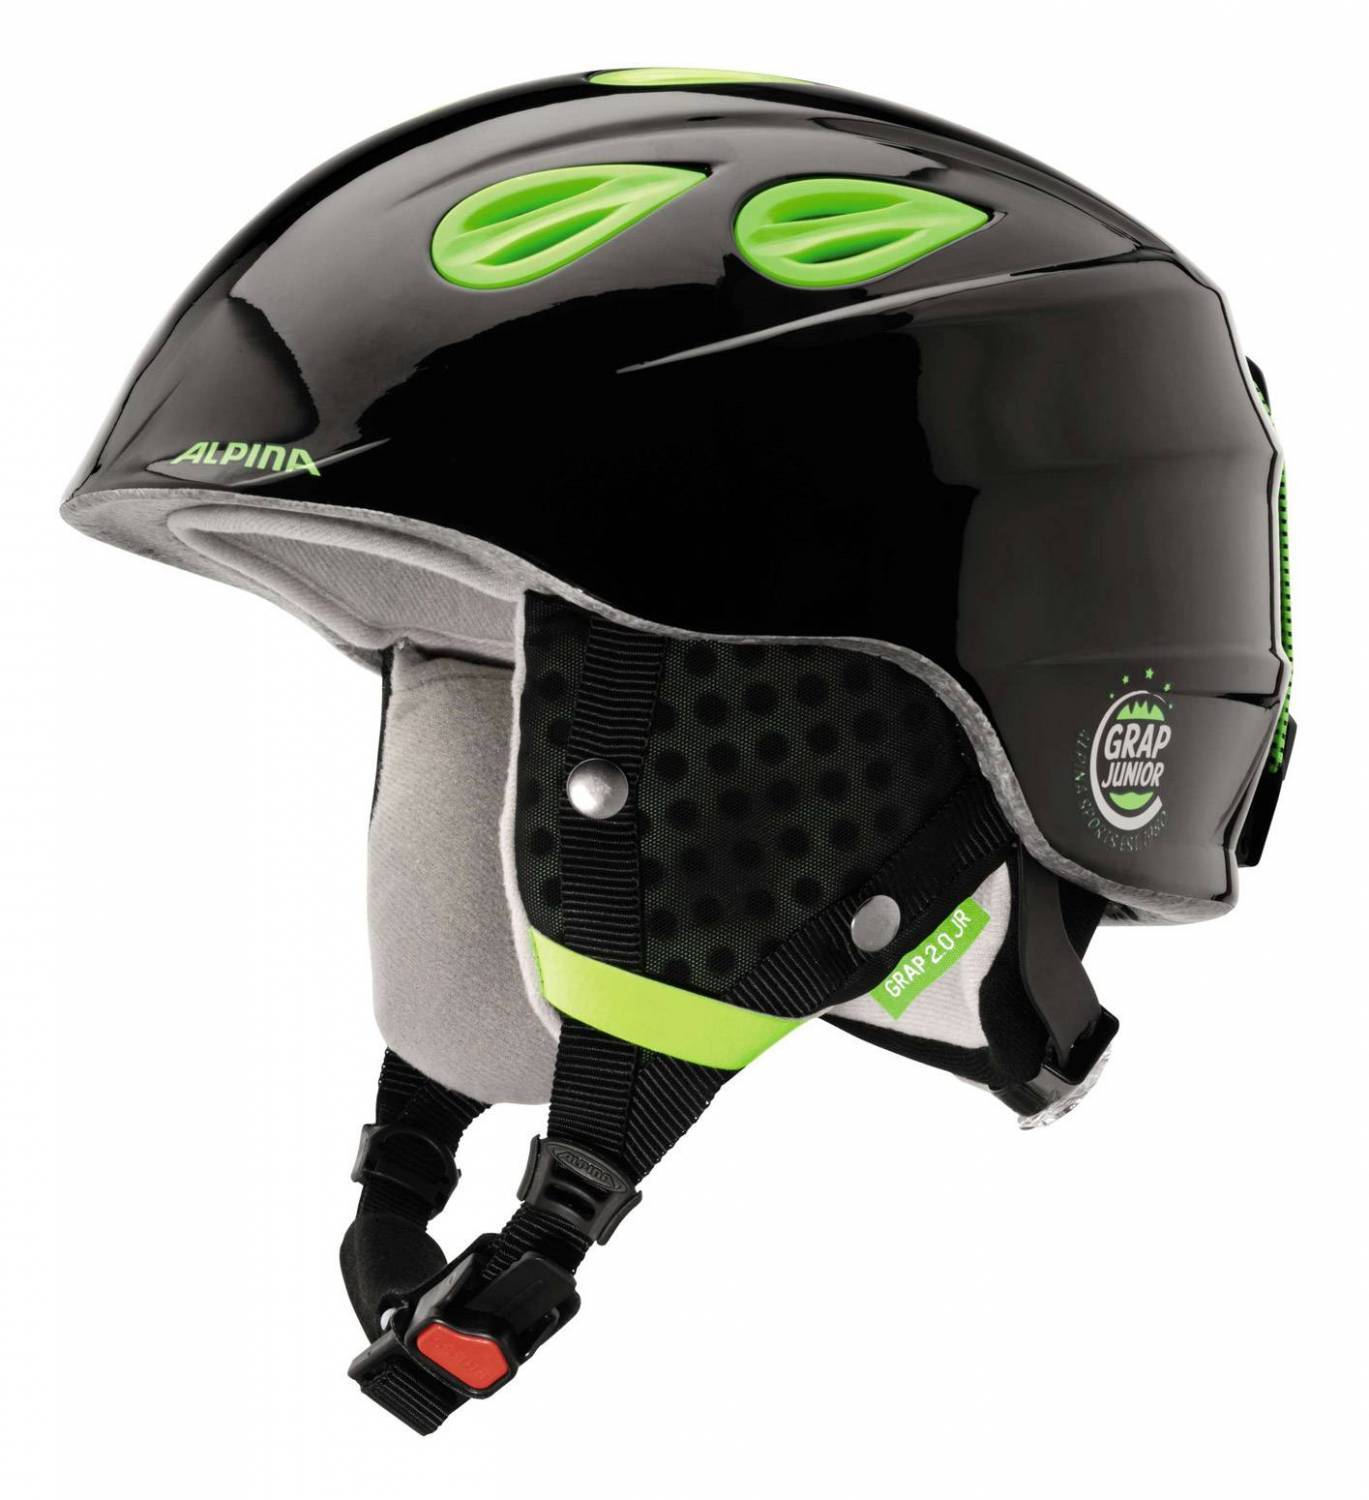 Alpina Grap 2.0 Junior Kinderskihelm (Größe 51 54 cm, 35 black neon yellow)